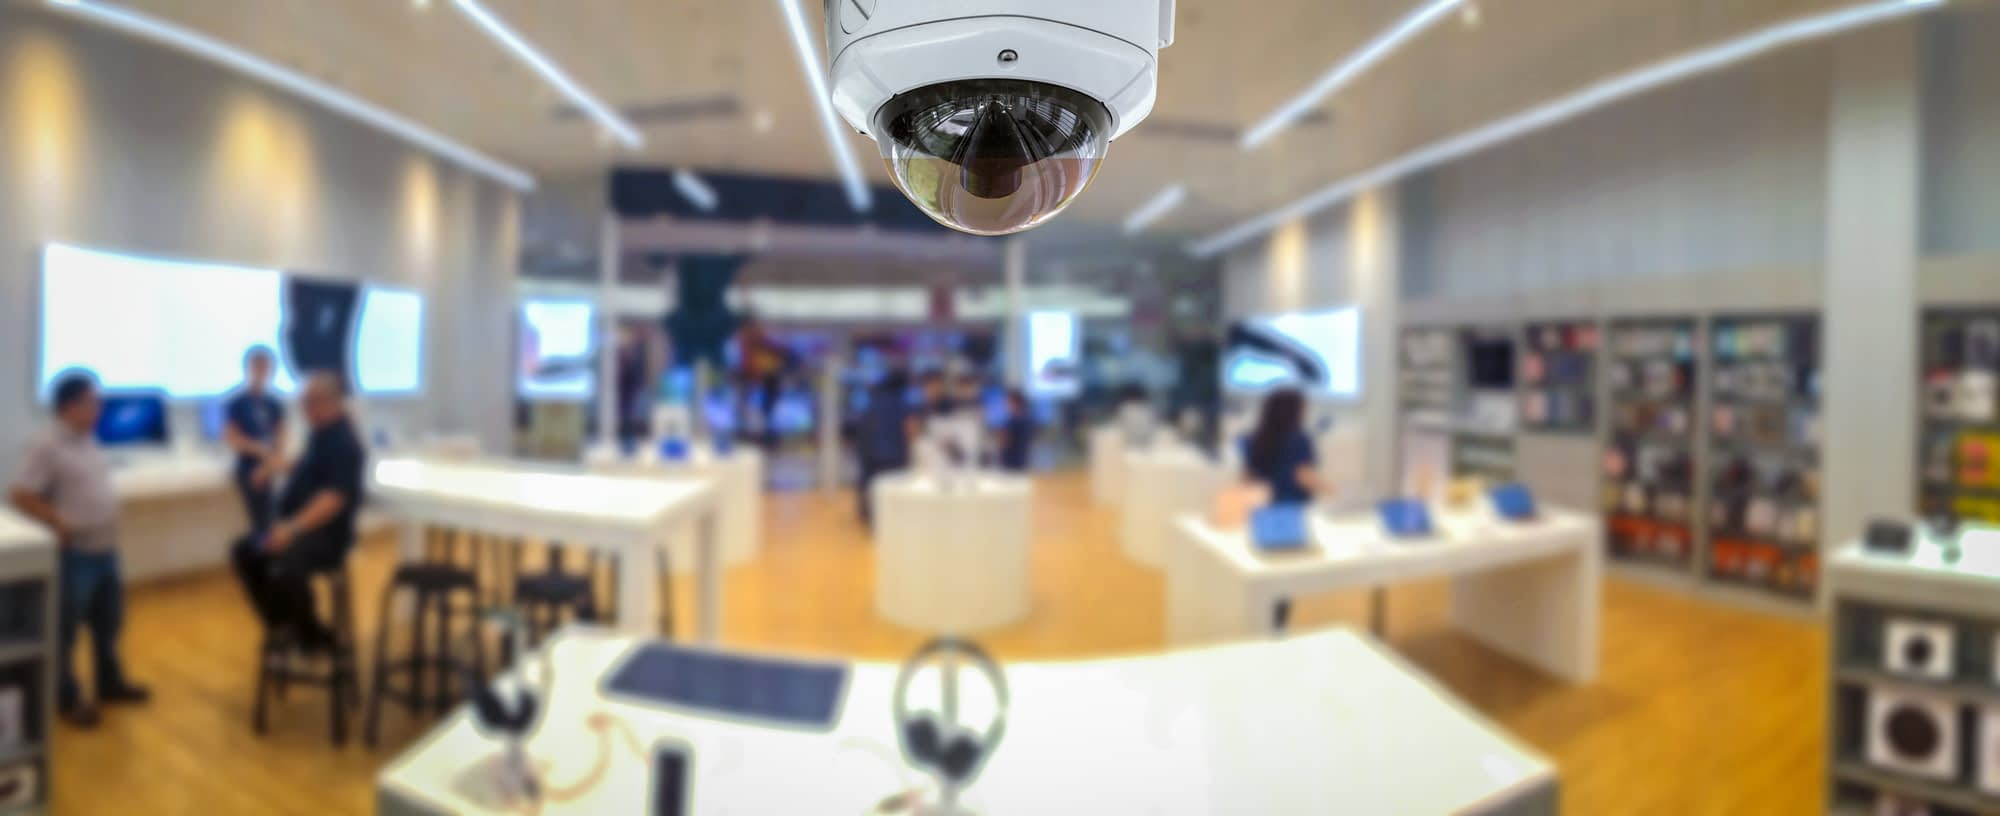 surveillance system for business